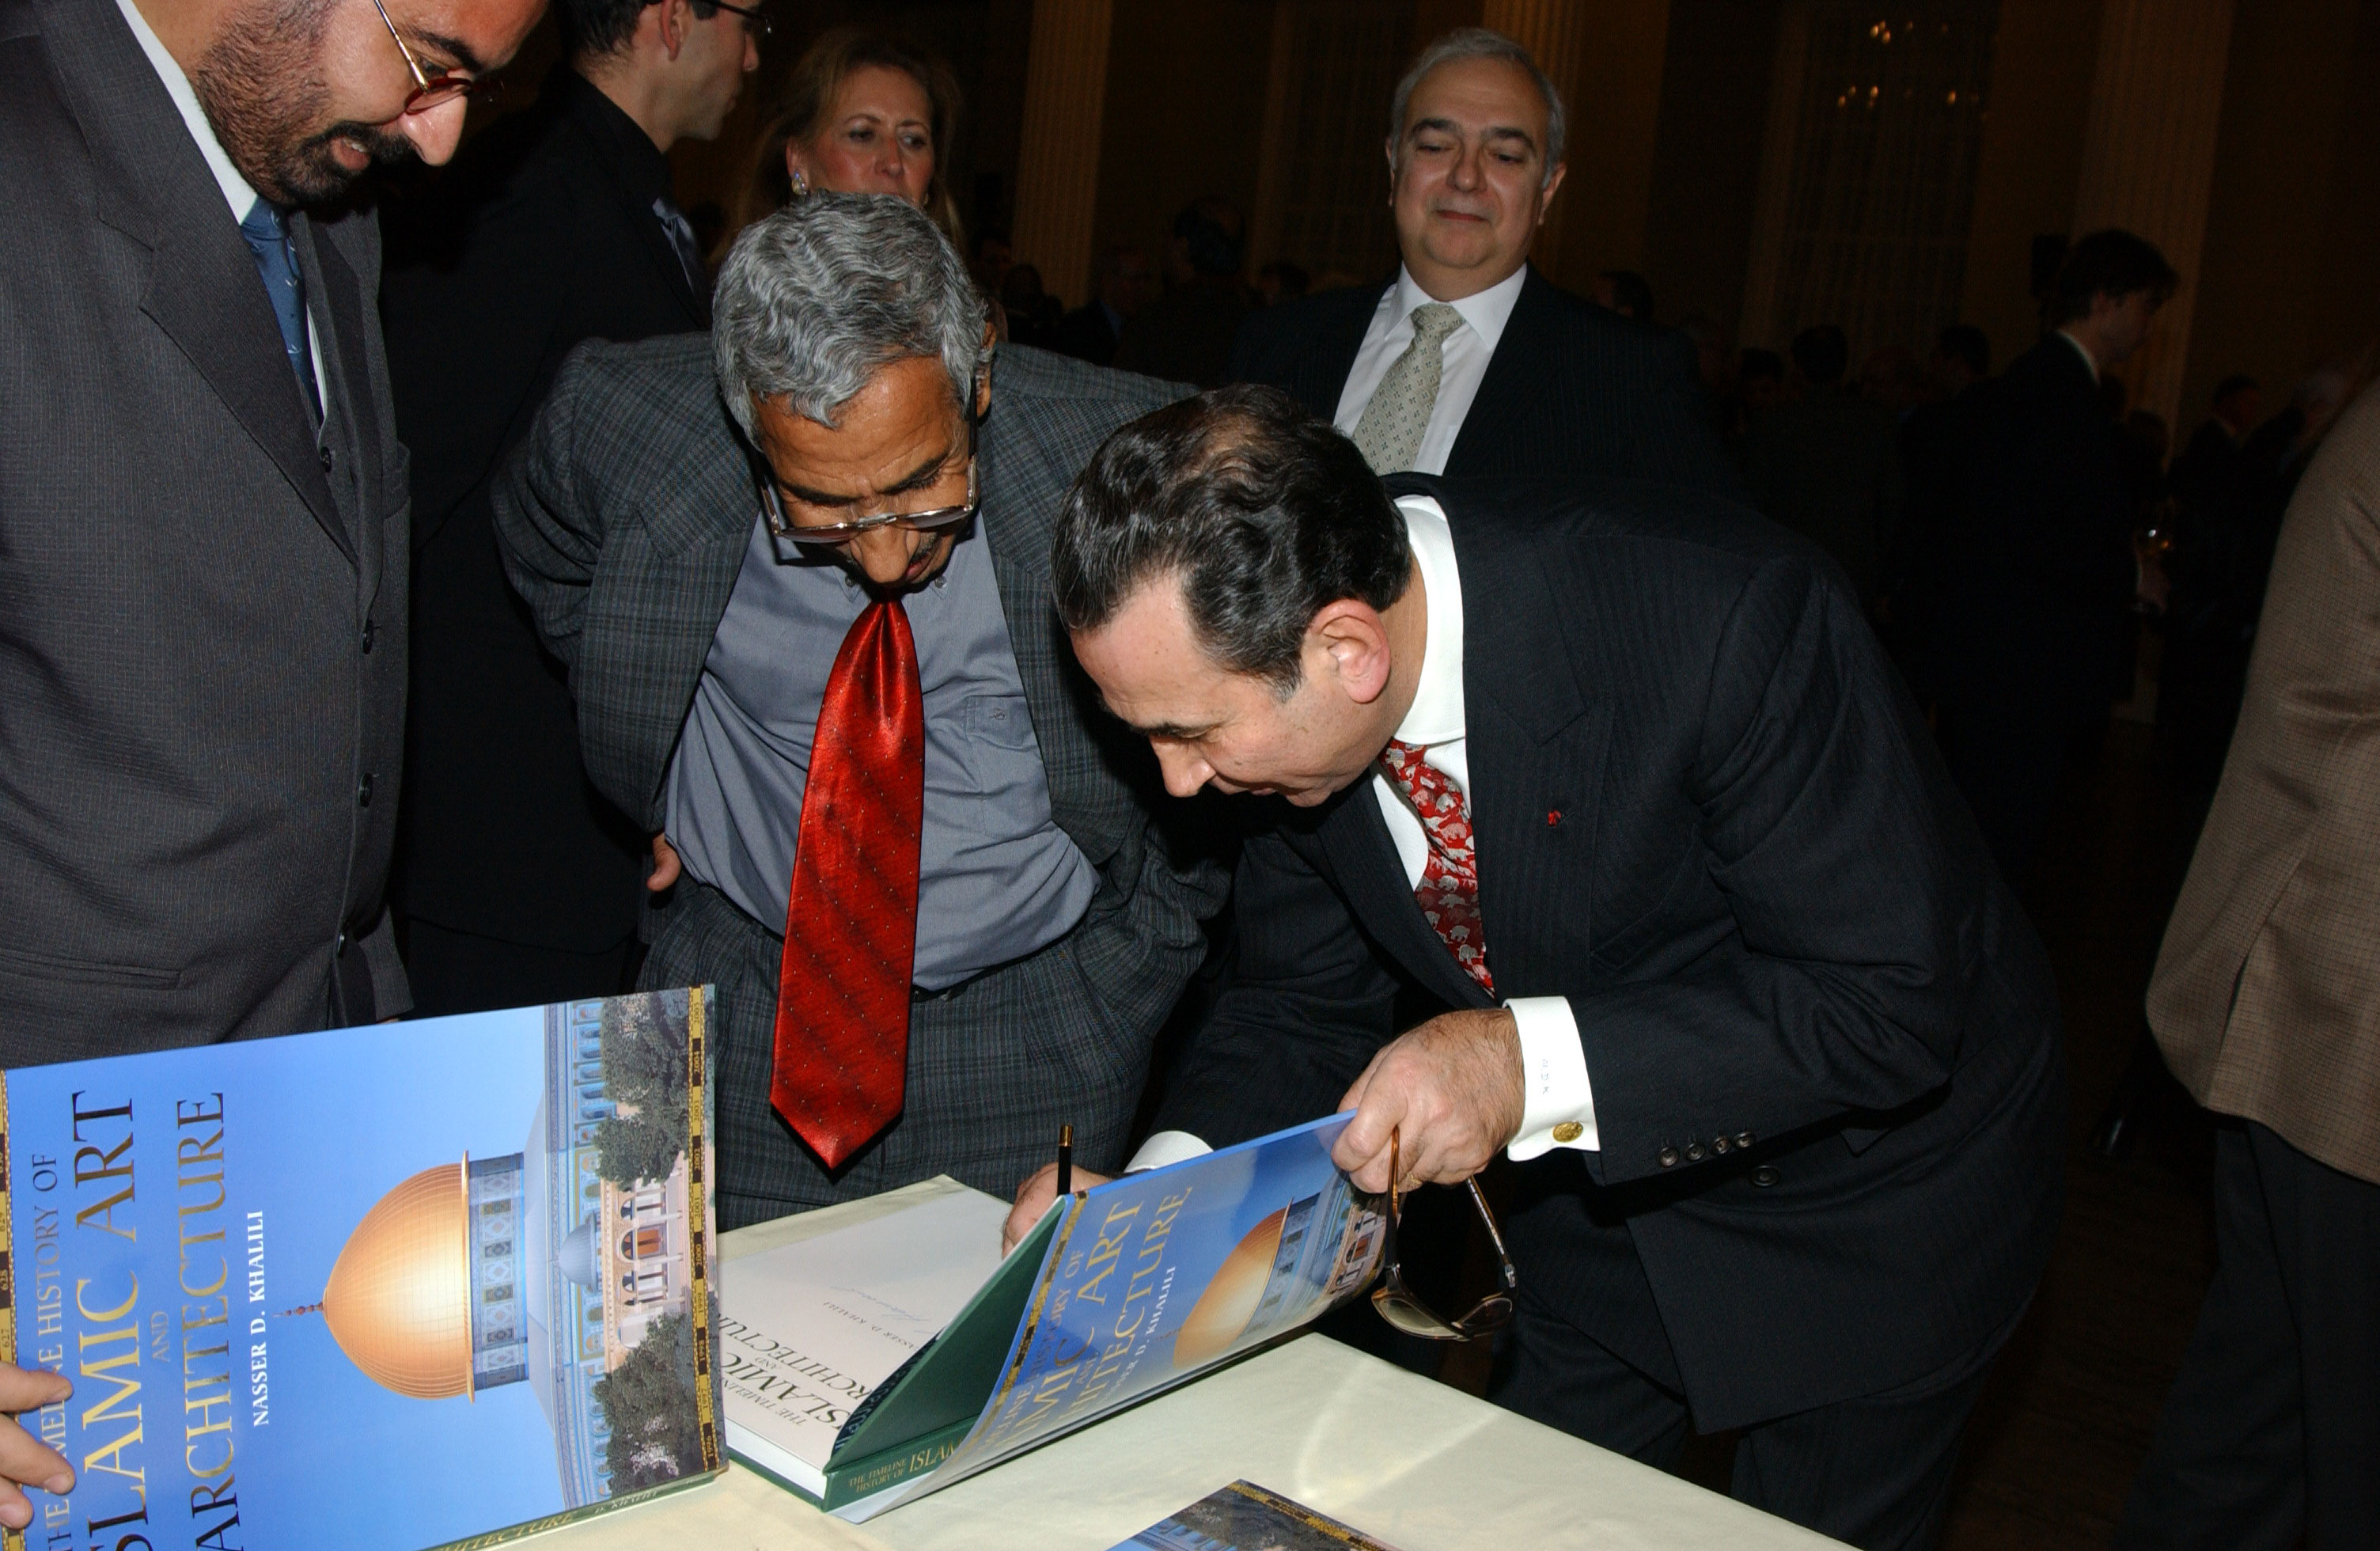 Professor Khalili signing the Book The Timeline History of Islamic Art And Architecture